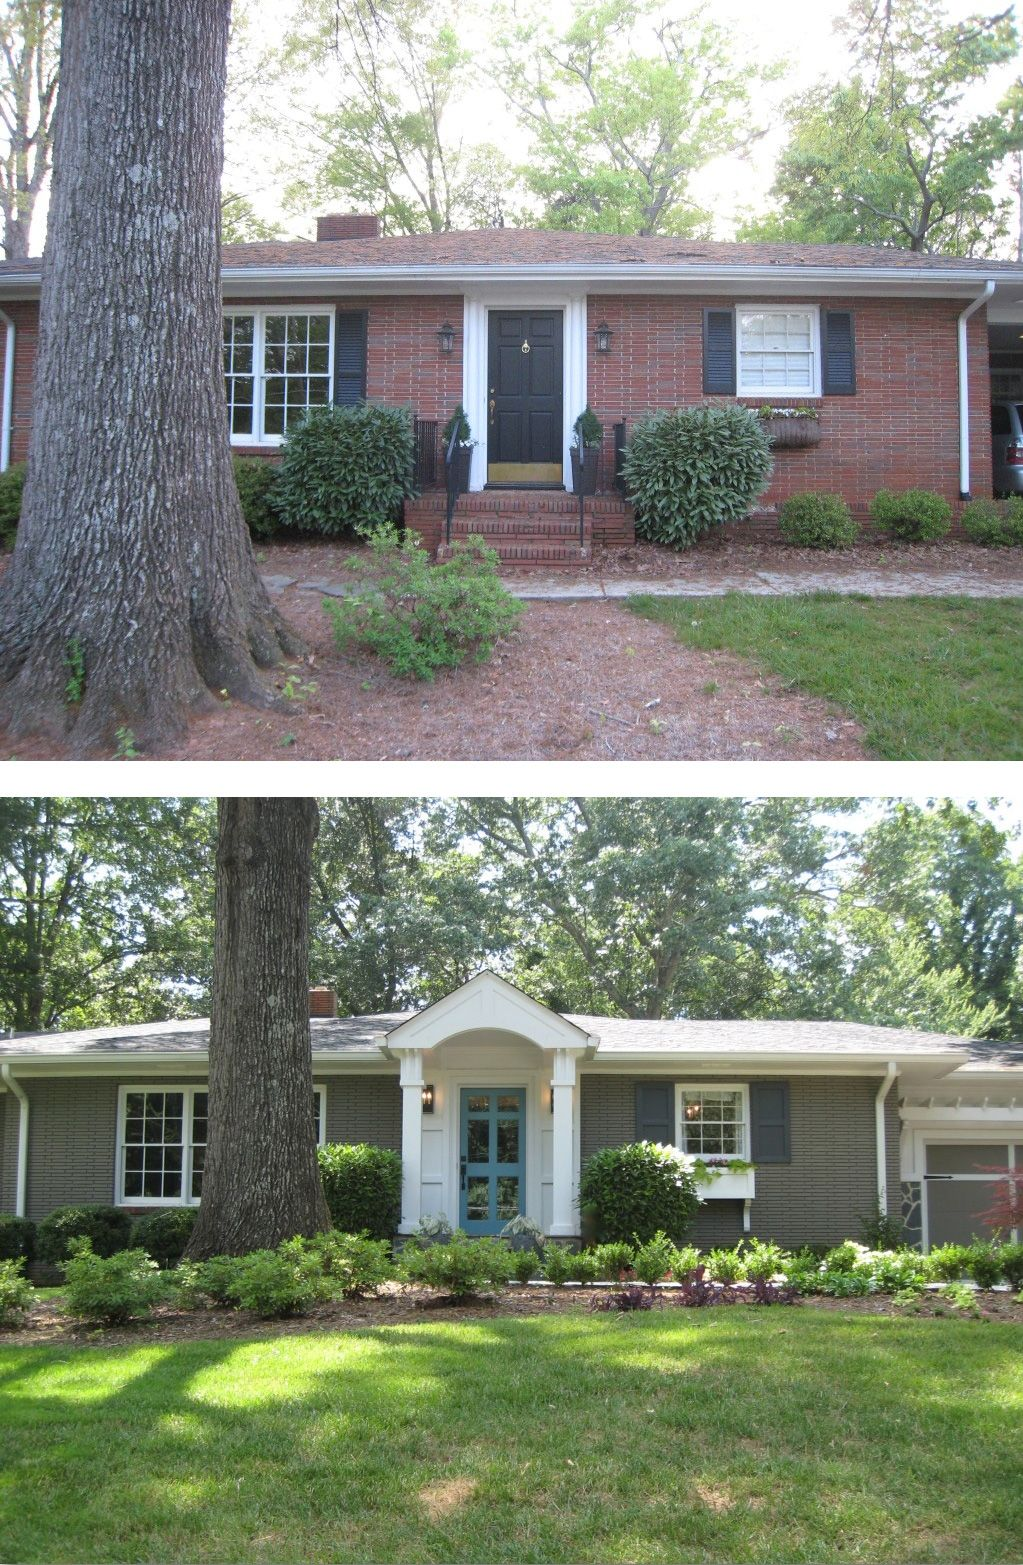 Before After Painted Brick Ranch Style Home Brick Sherwin Williams Backdrop 7025 Trim Sh Painted Brick House Home Exterior Makeover Painted Brick Ranch